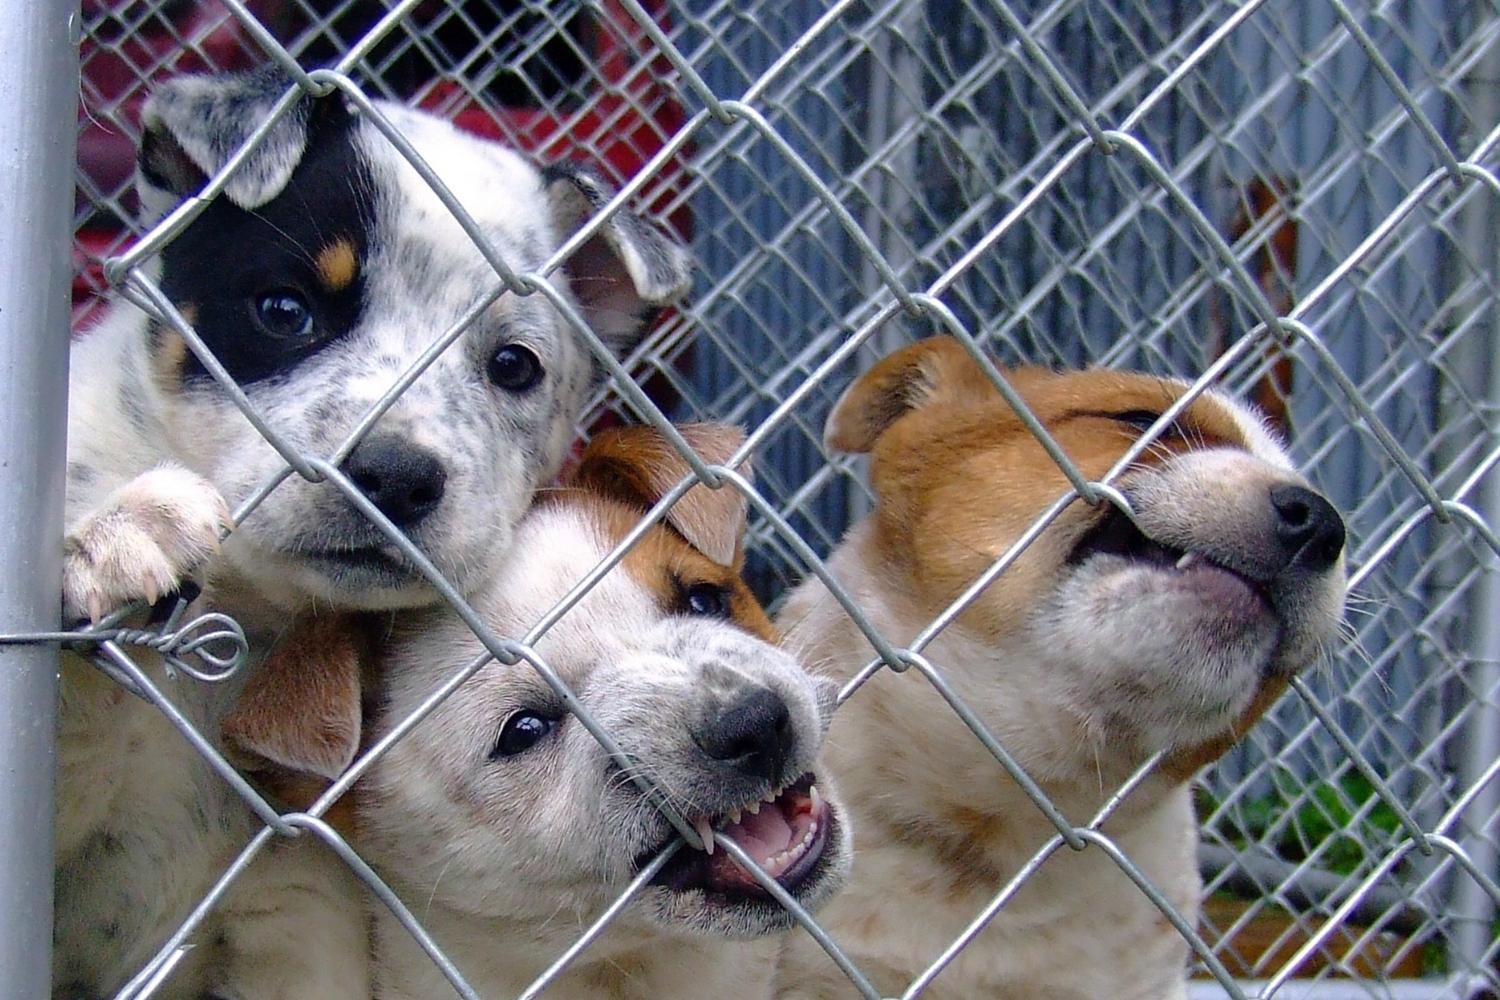 Adopt a pet in Chicago - puppies